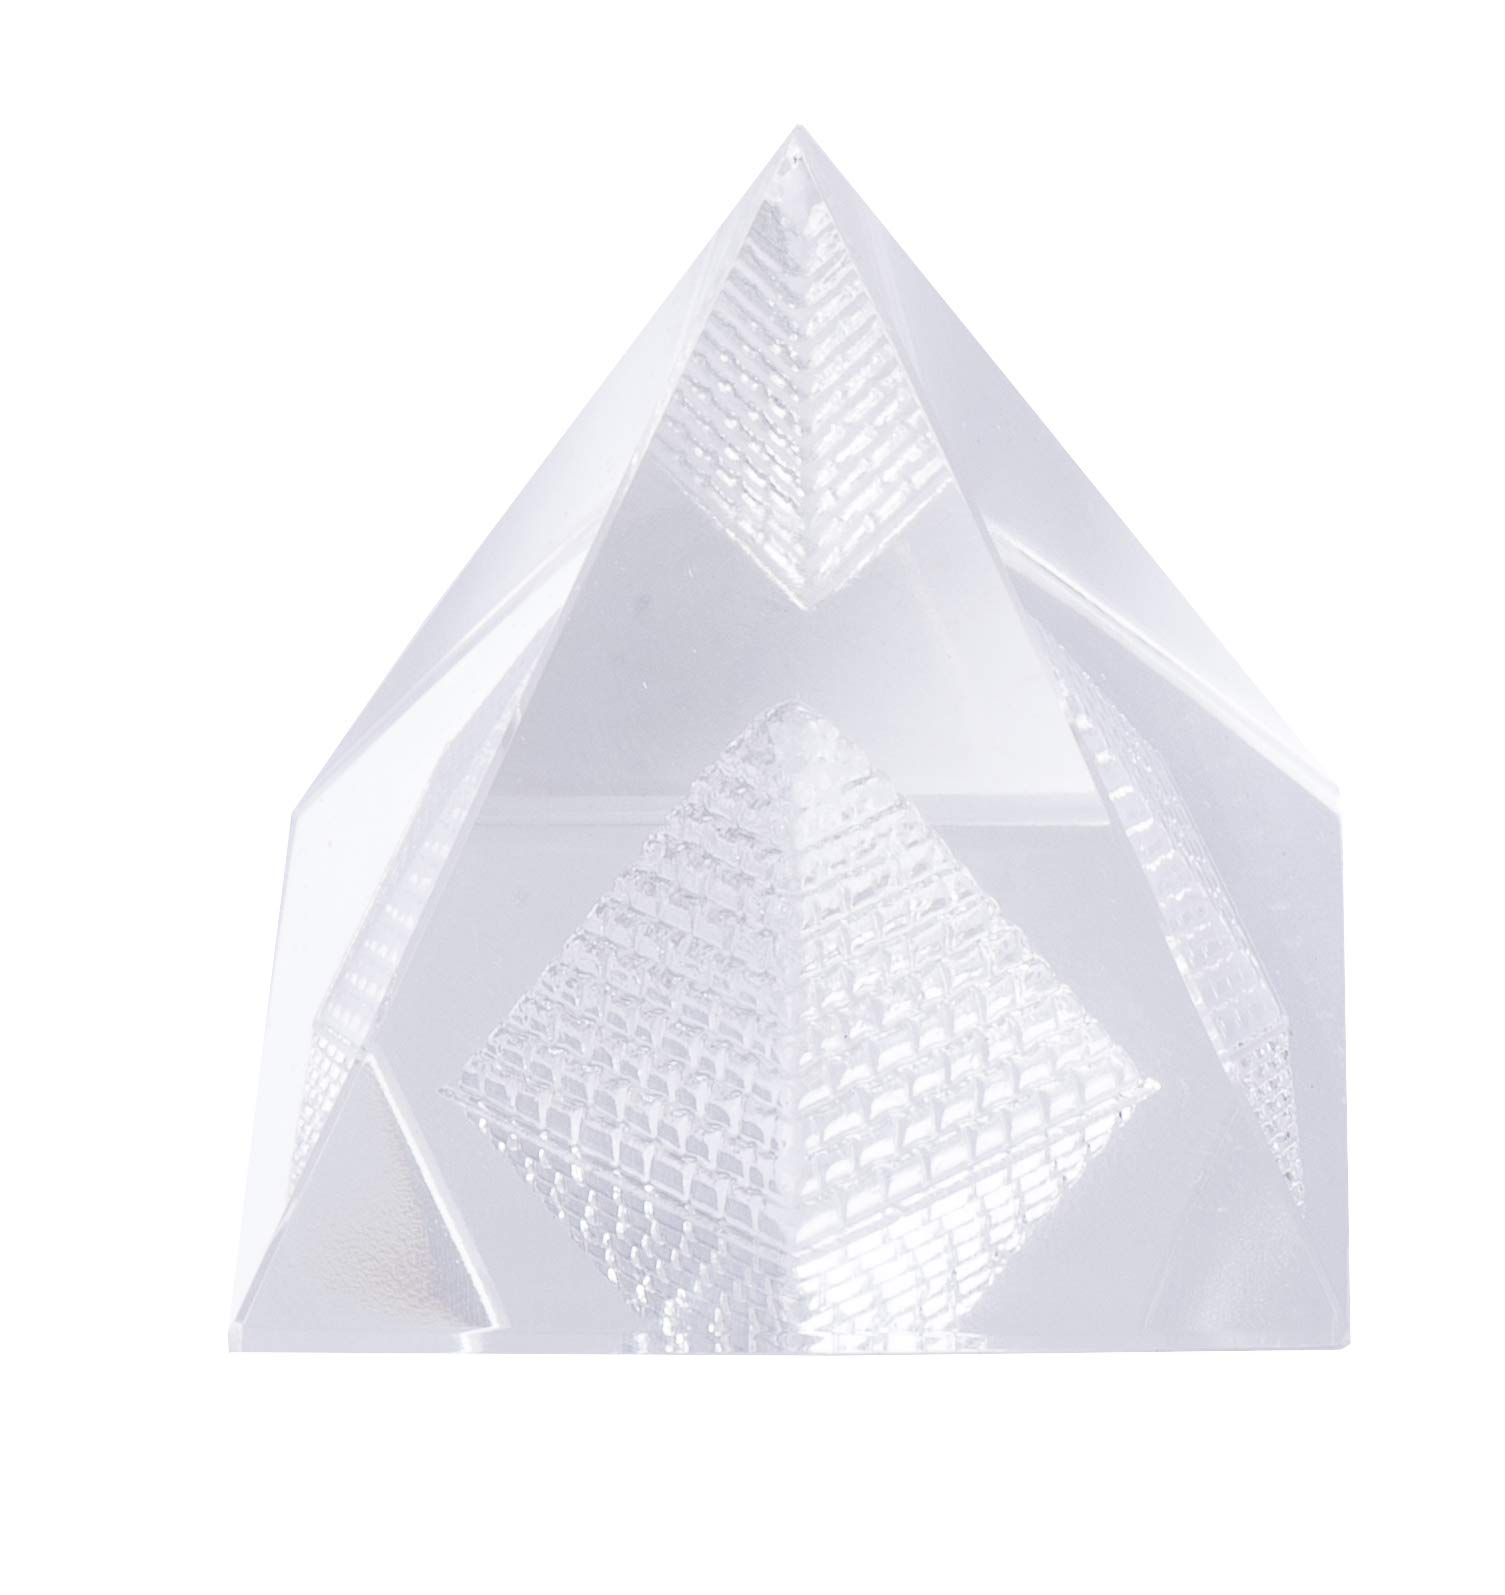 Pandit NM Shrimali Crystal Pyramid BARMUDA Triangle (60Gm, Weight: 30 gm, Material: Crystal)